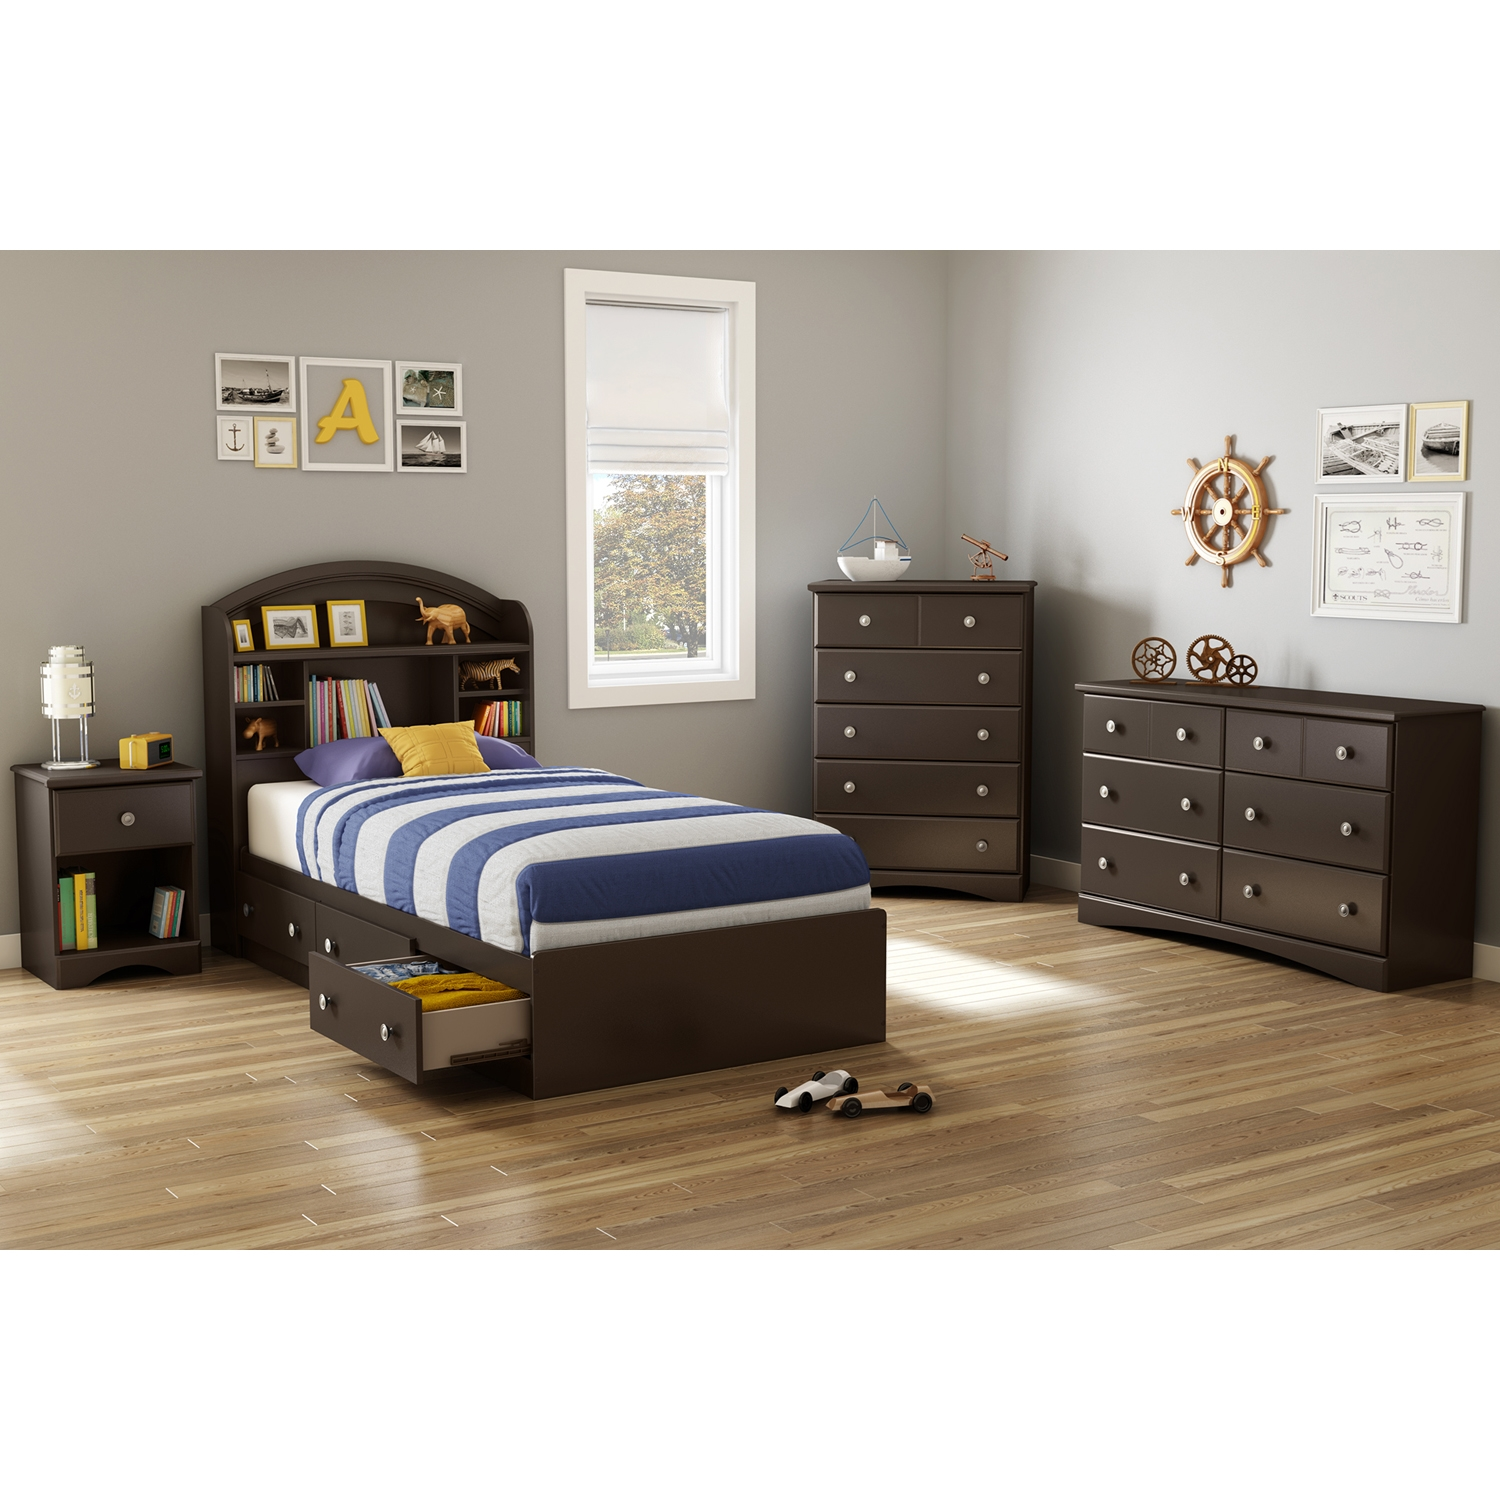 Morning Dew 6 Drawers Double Dresser - Chocolate - SS-9016027